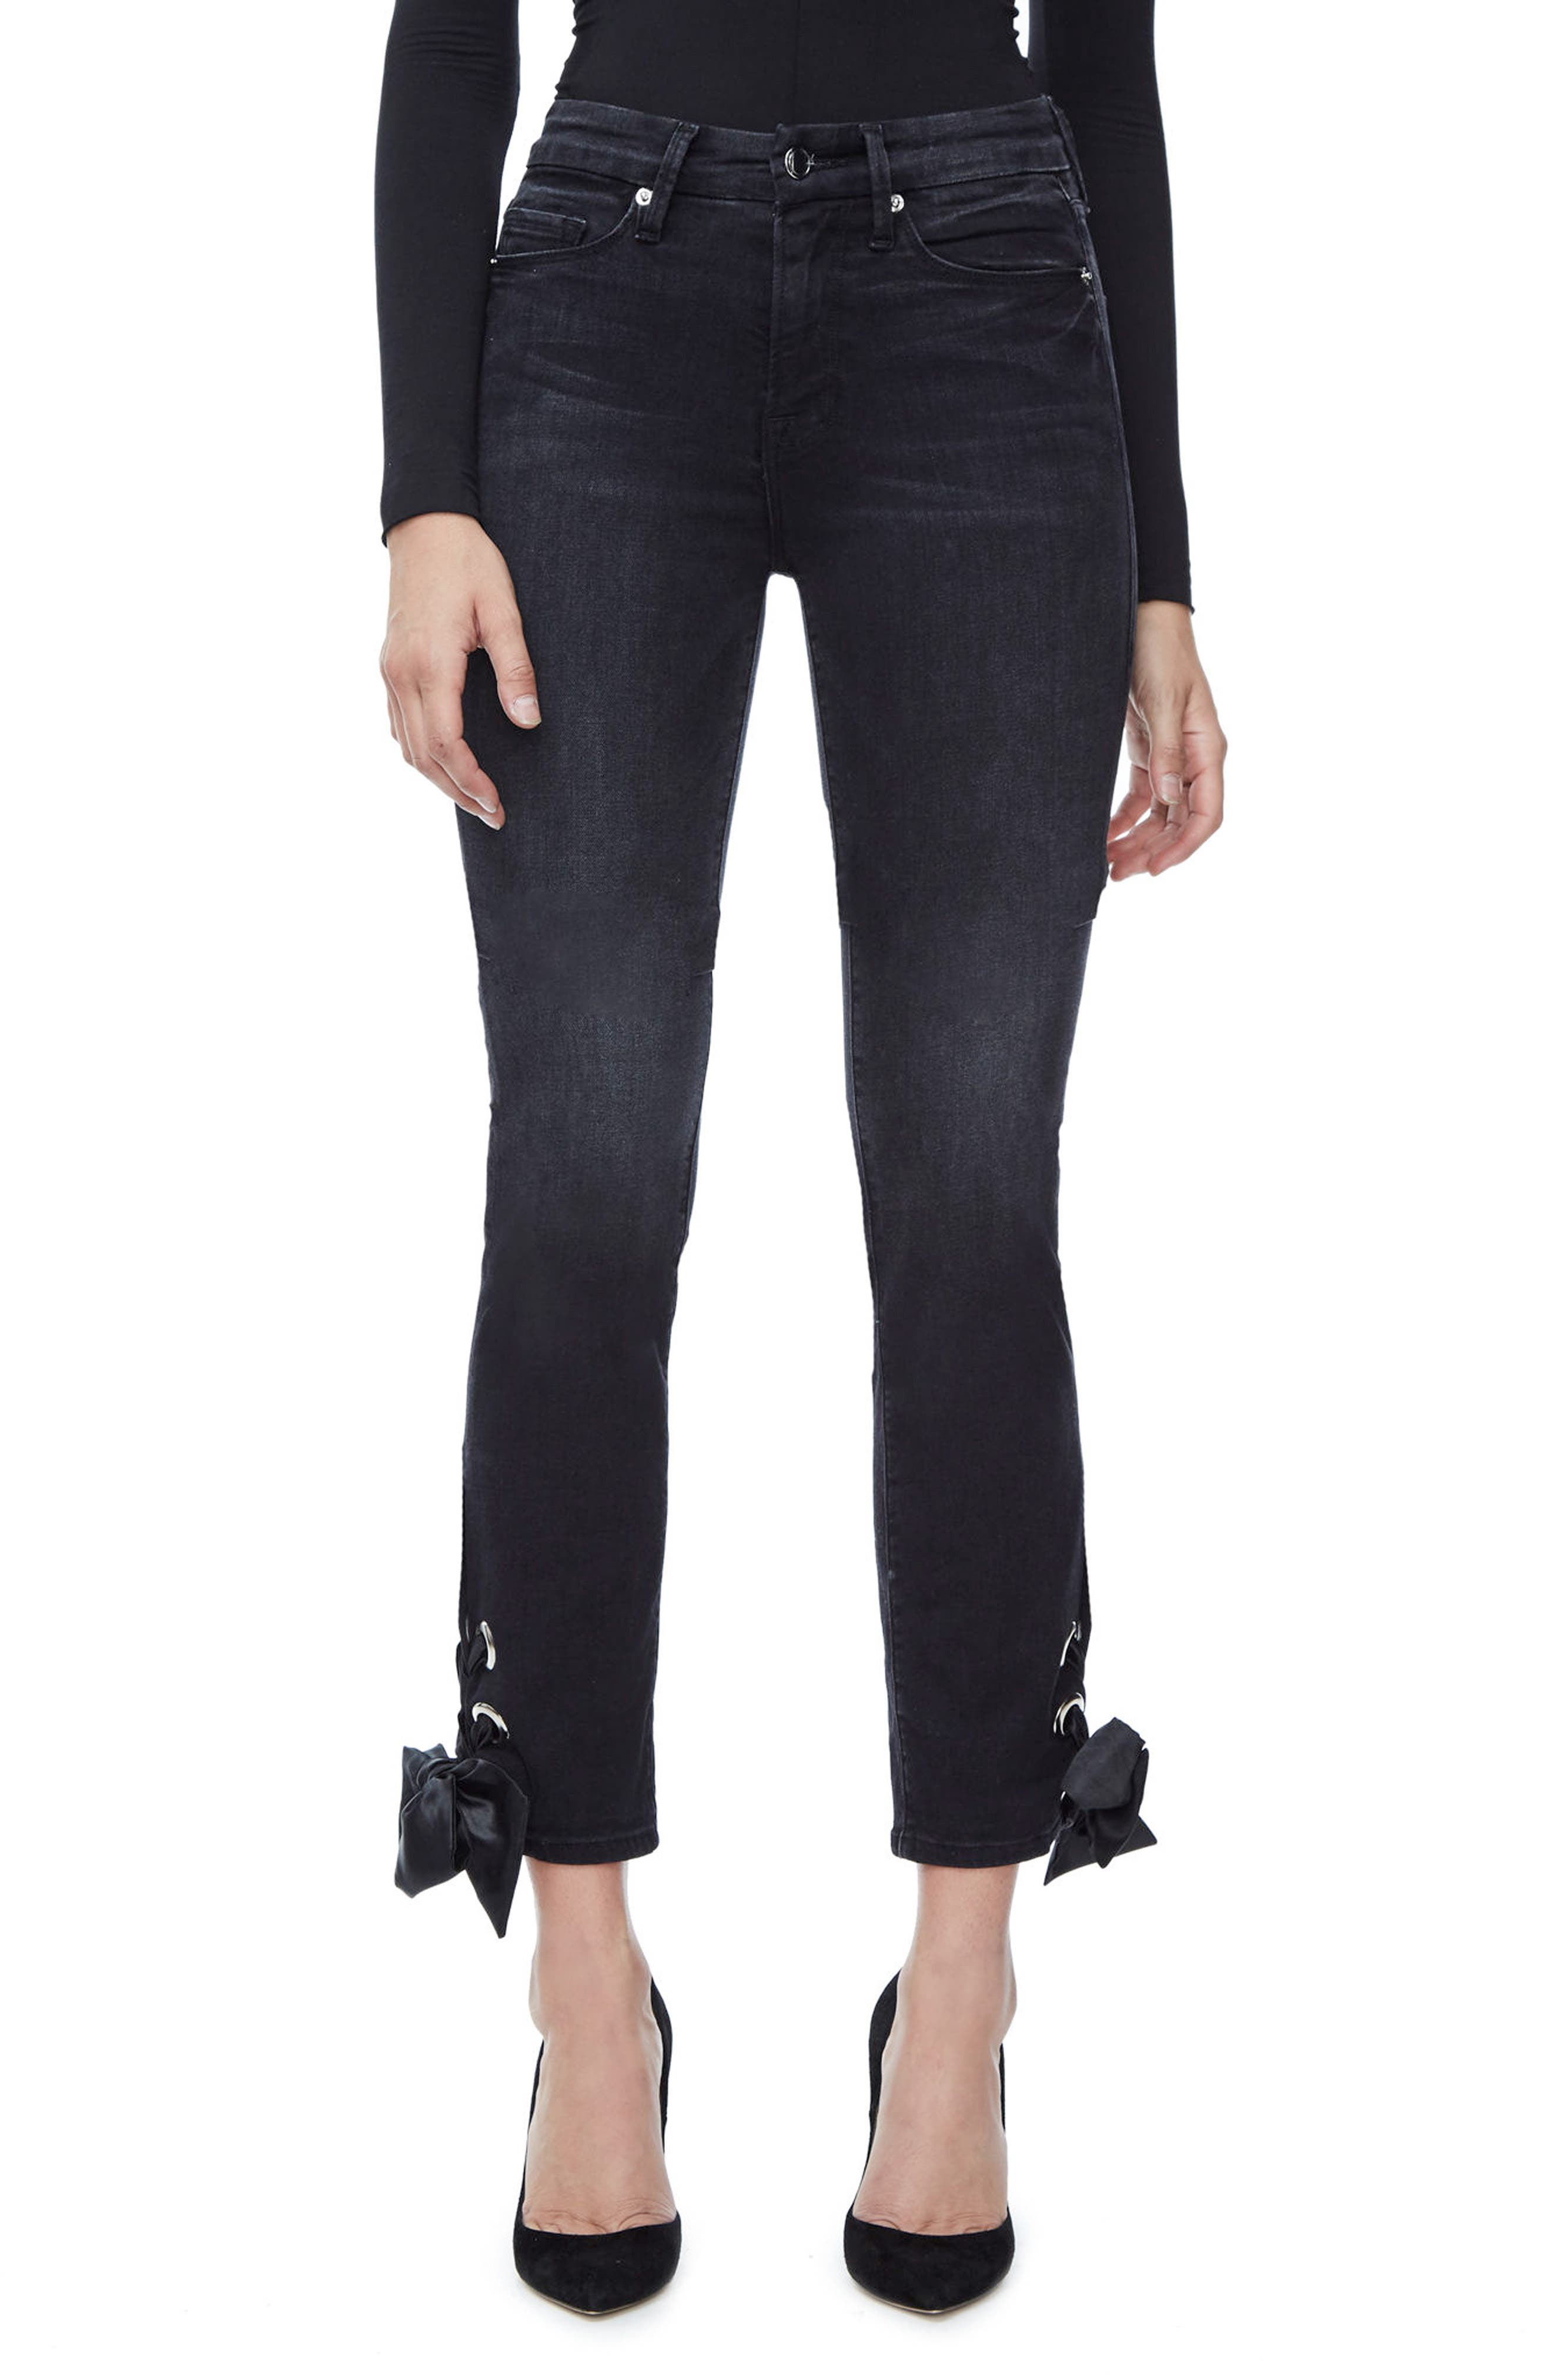 Main Image - Good American Good Straight Ankle Lace Skinny Jeans (Black 010) (Extended Sizes)